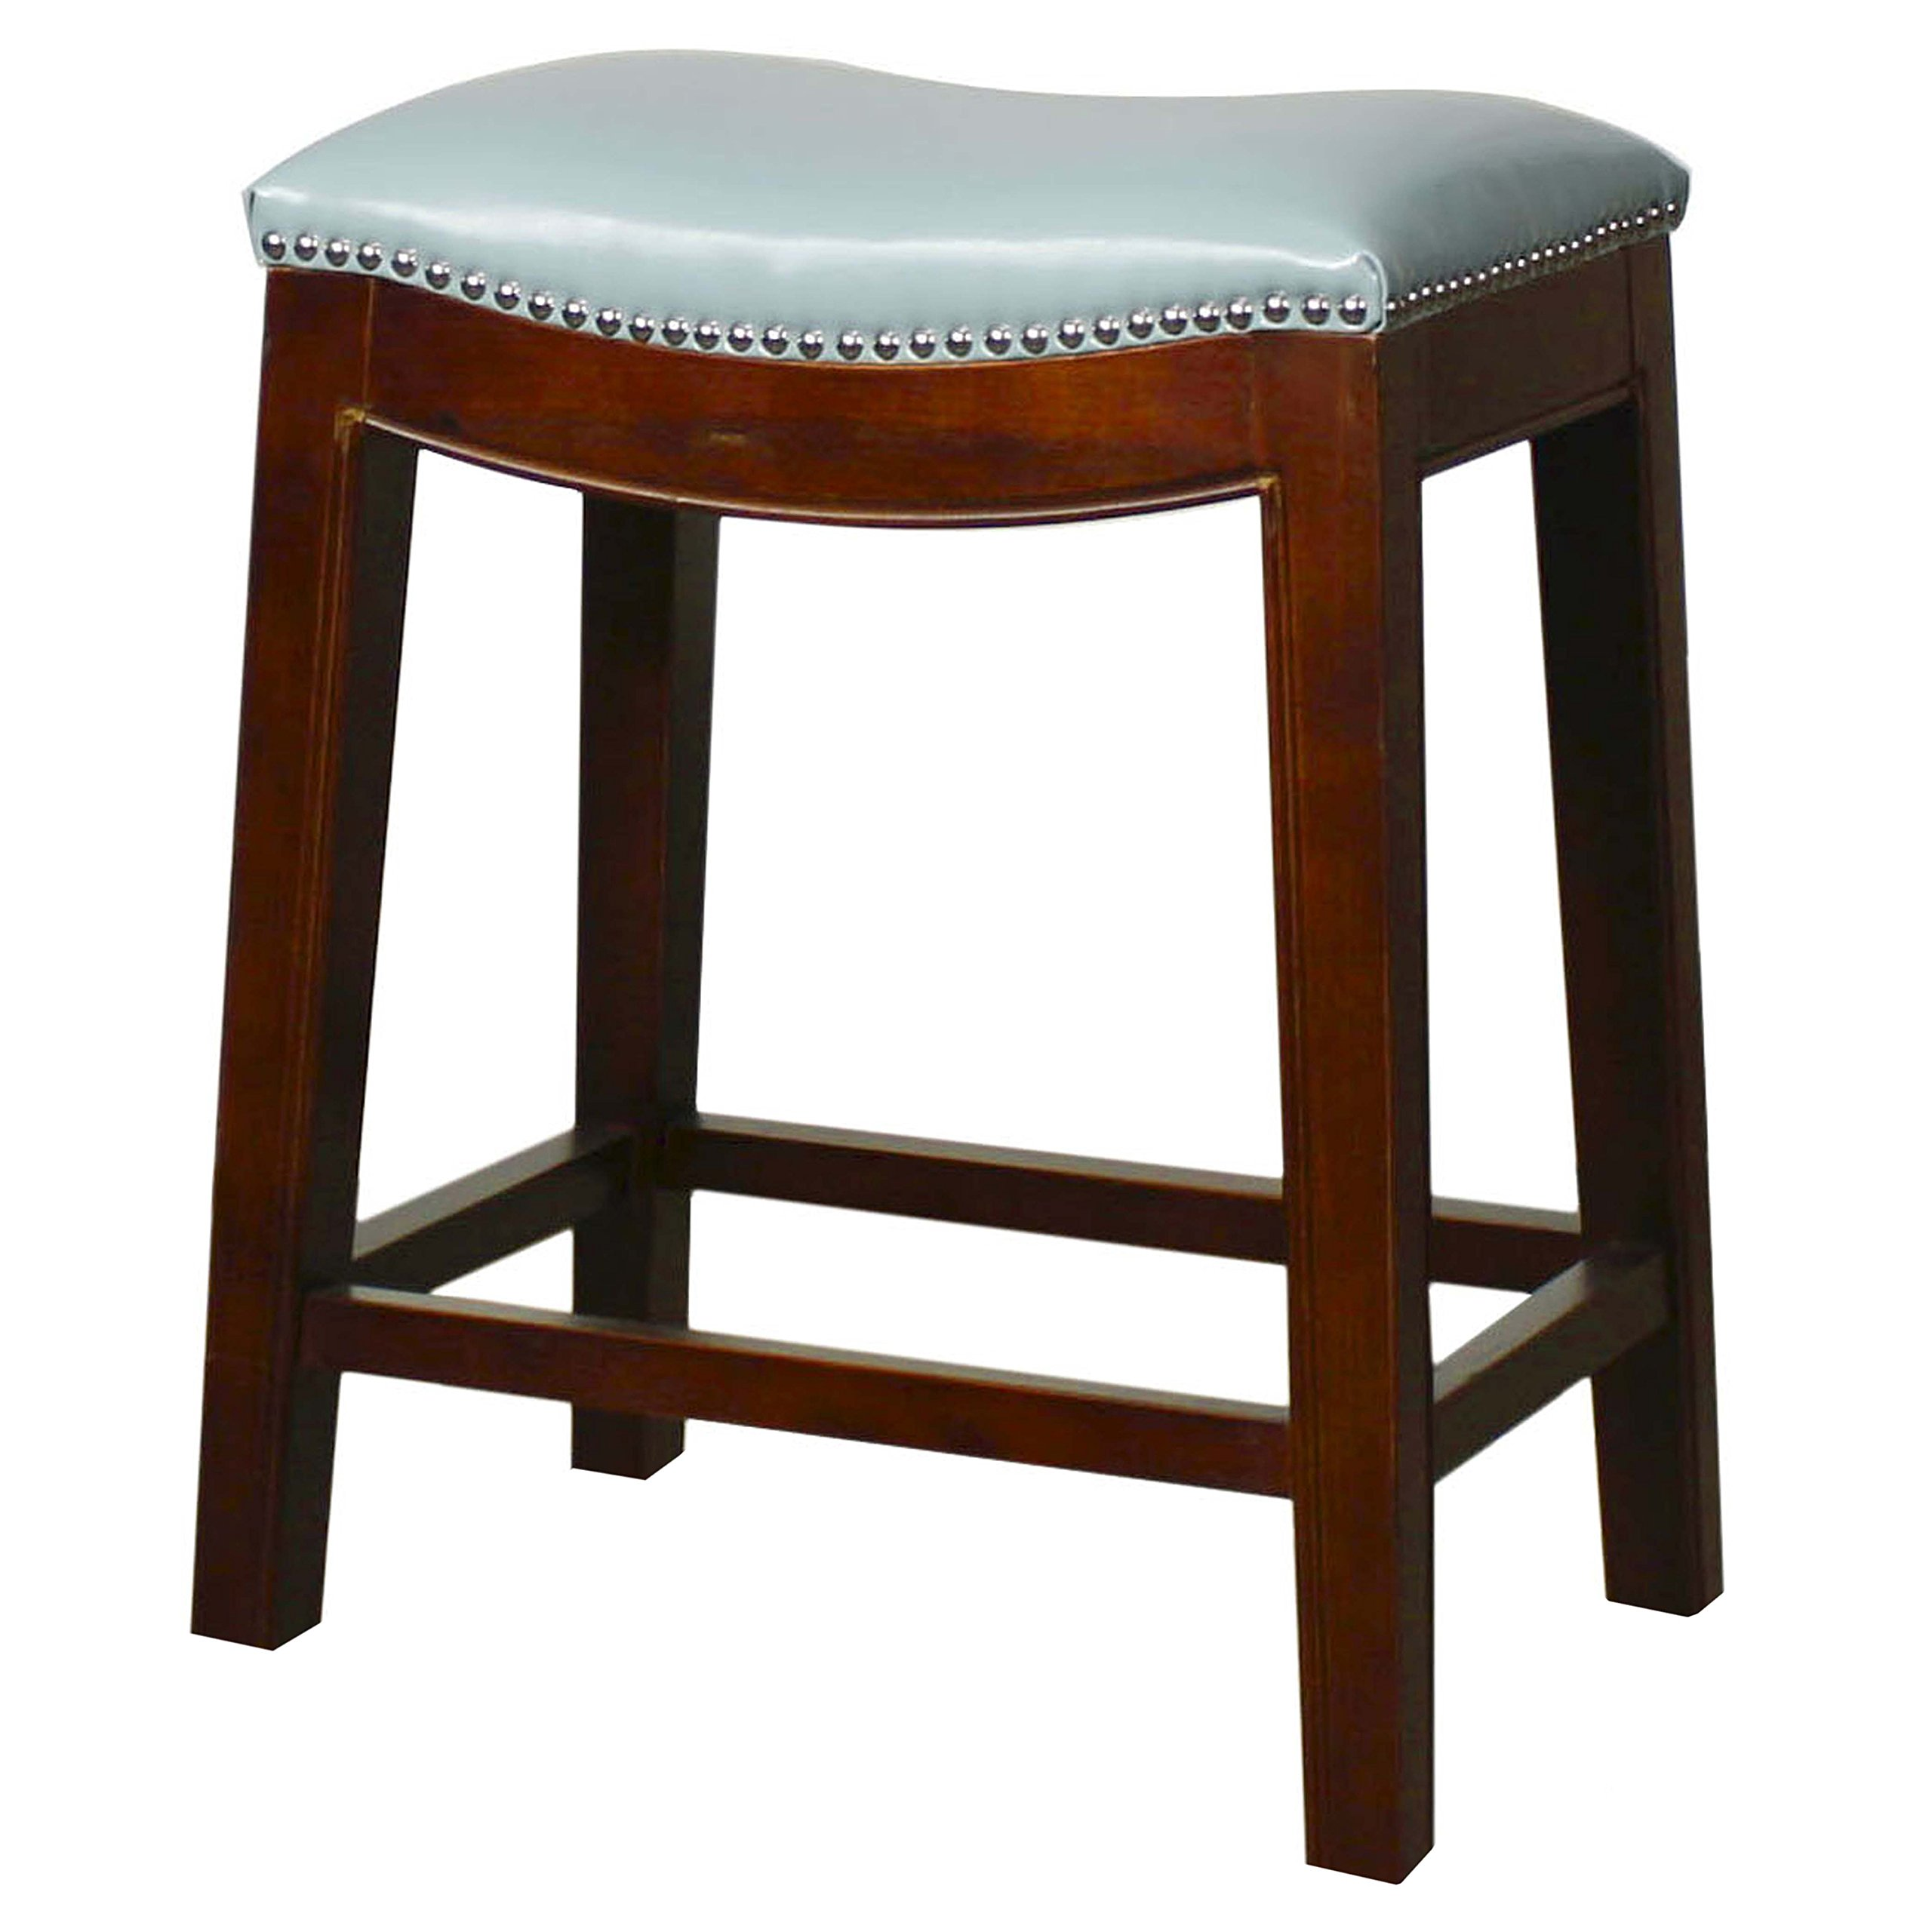 New Pacific Direct Elmo Bonded Leather Counter Stool,Cinnamon Brown Legs,Blue